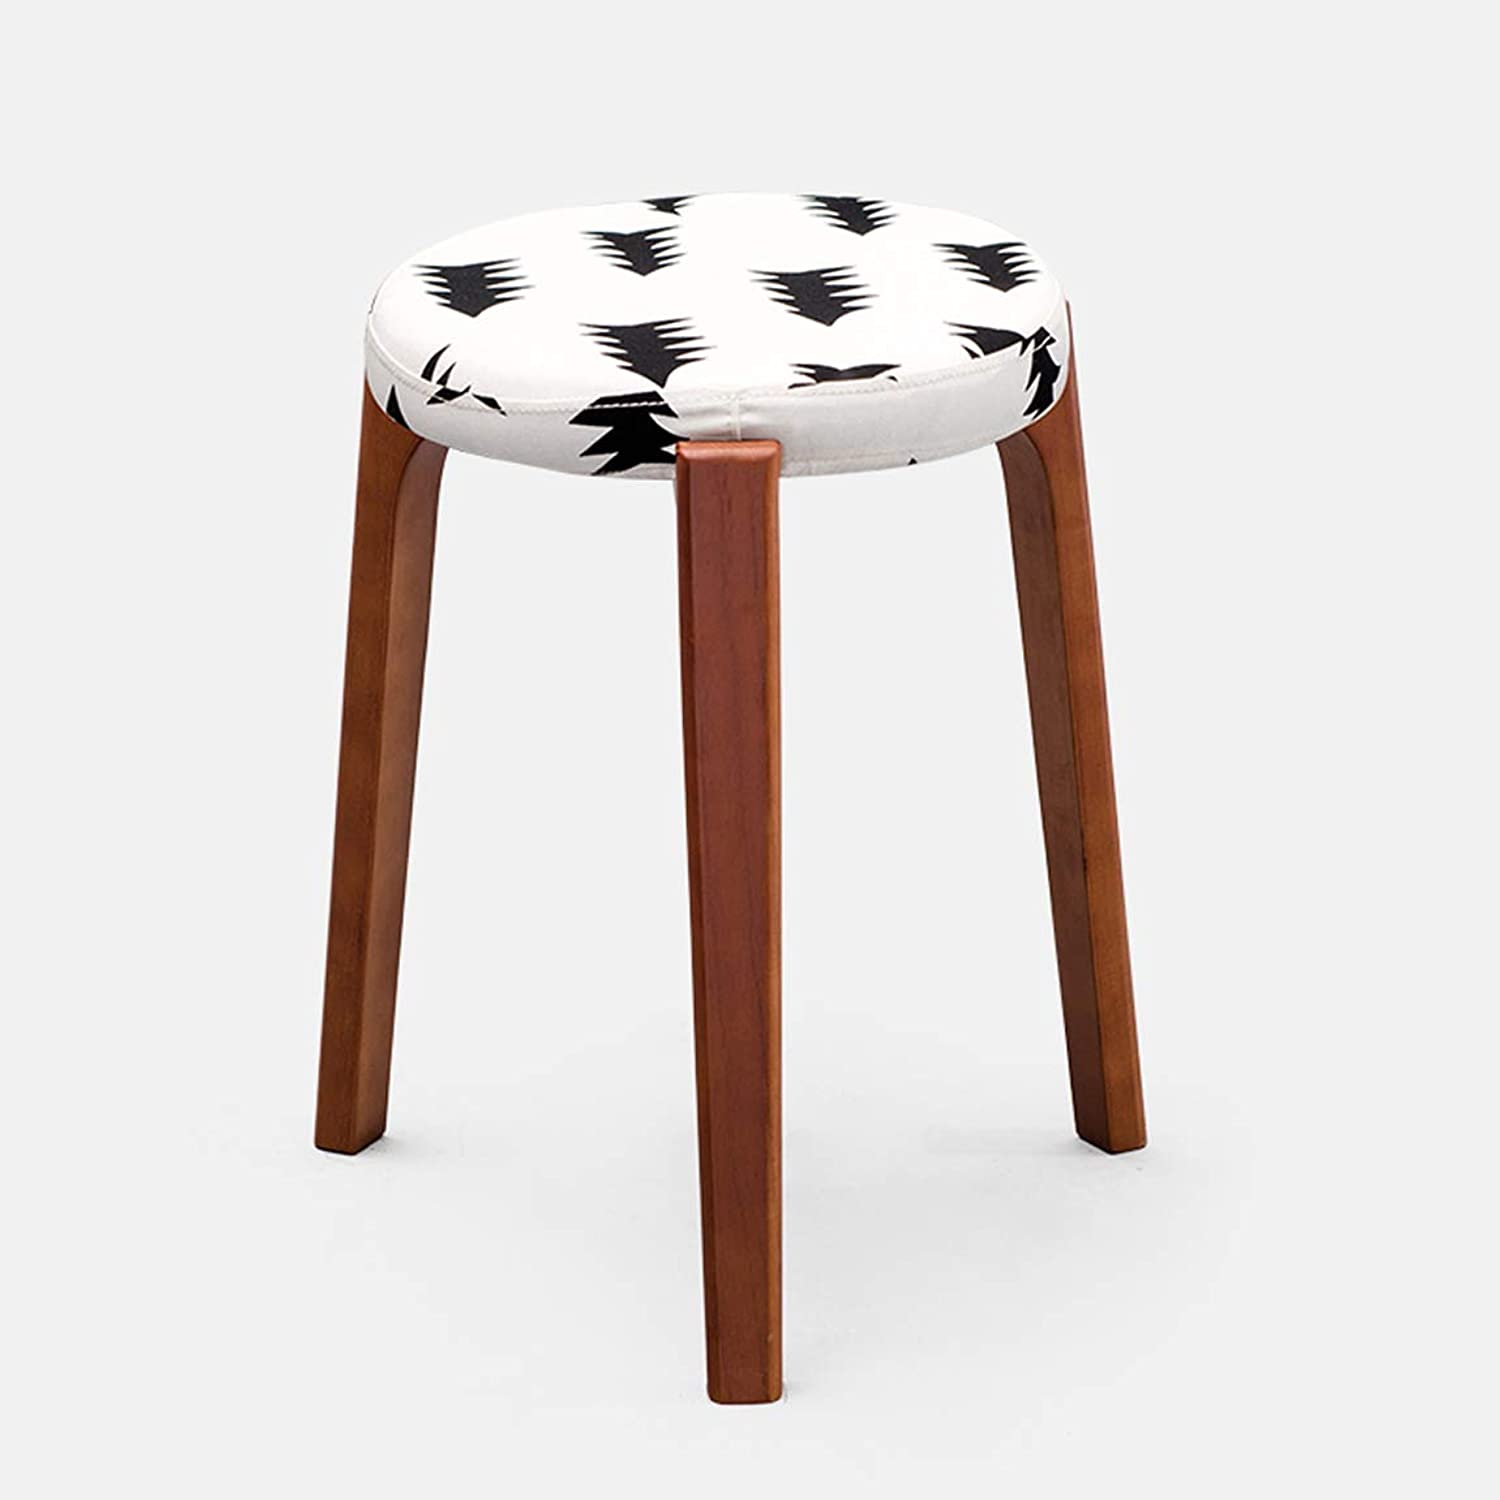 HLQW Creative Small Stool, Solid Wooden Dining Stool, Square Stool, Dressing Stool, Simple Fashionable Dressing Stool, Bench, Household Stool, Brown Leg 7